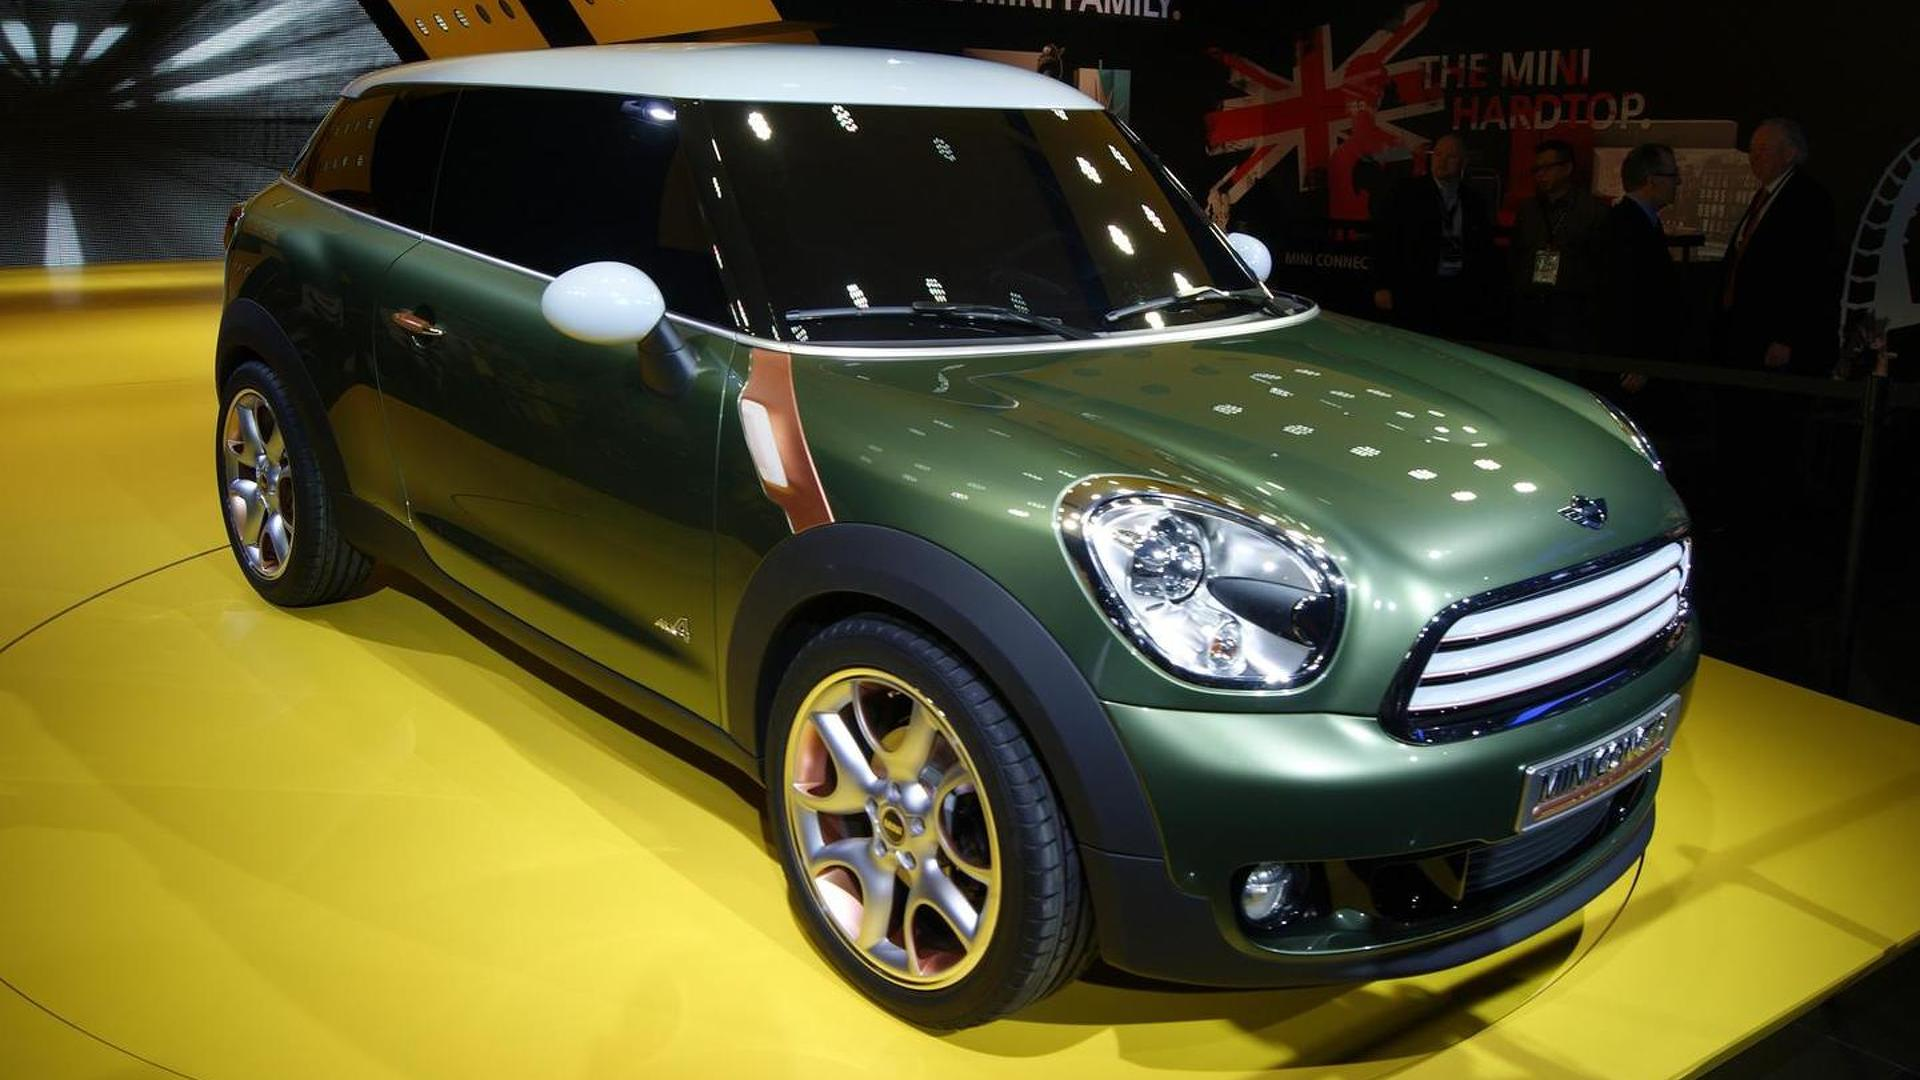 MINI Paceman will be launched in 2013 - report